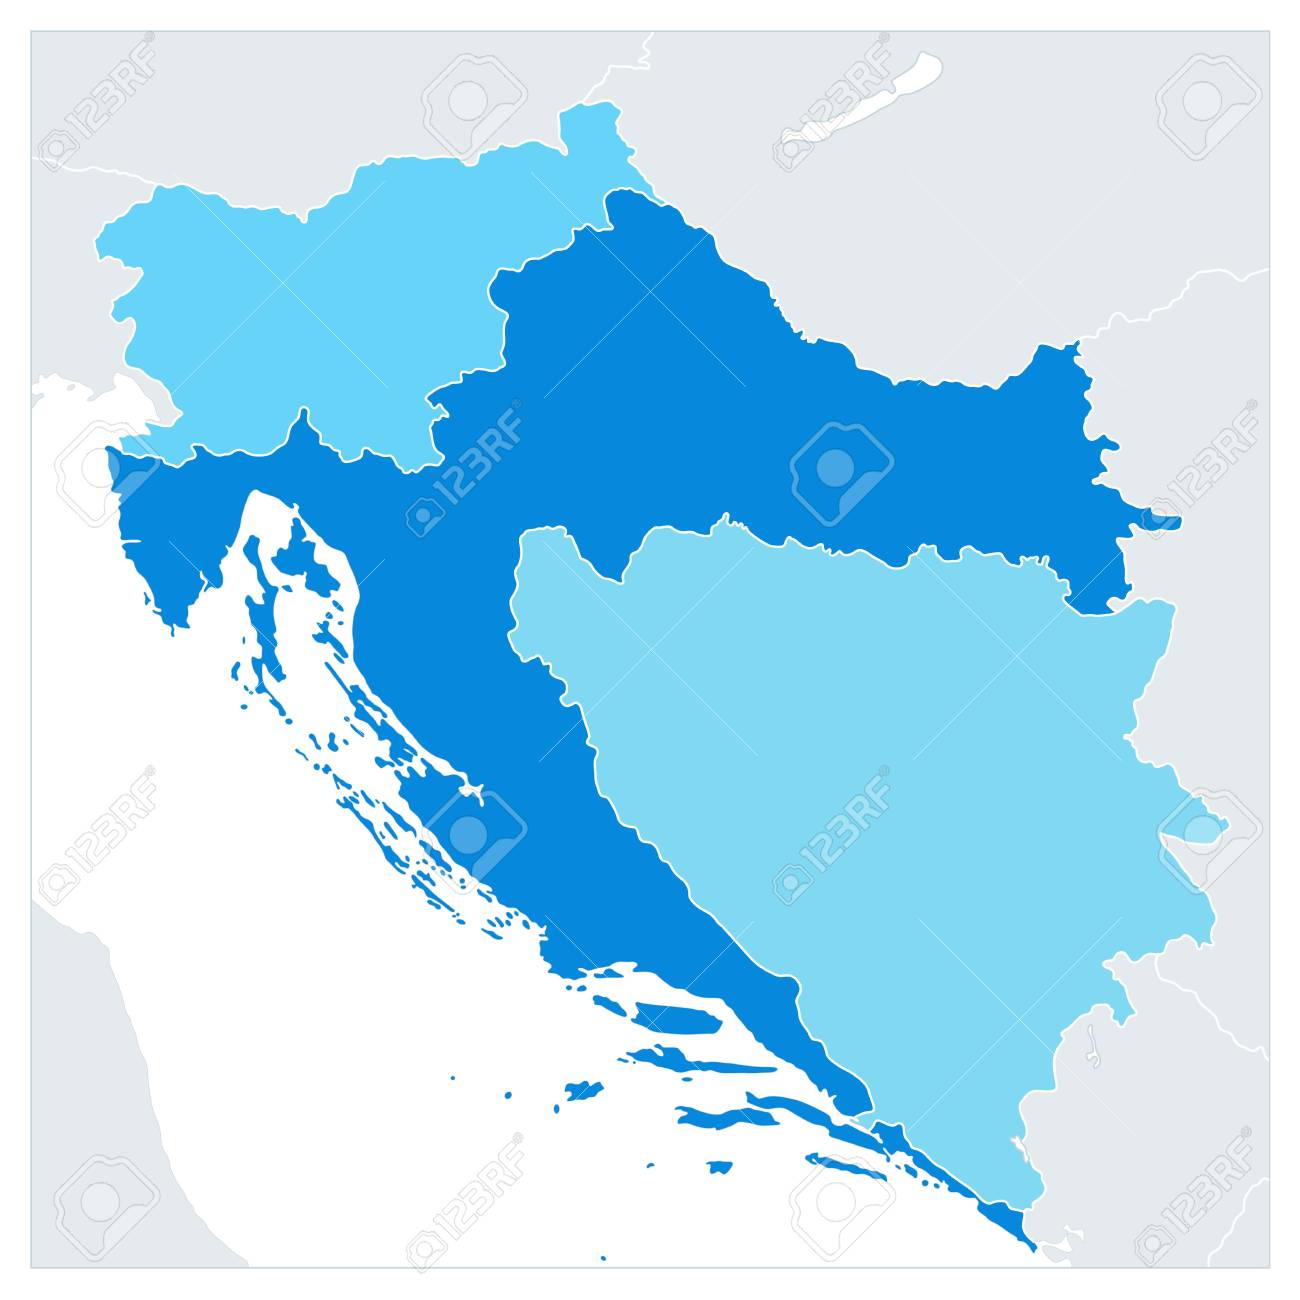 Map of the Western Balkans In Colors Of Blue. No text. Vector illustration. - 113963260